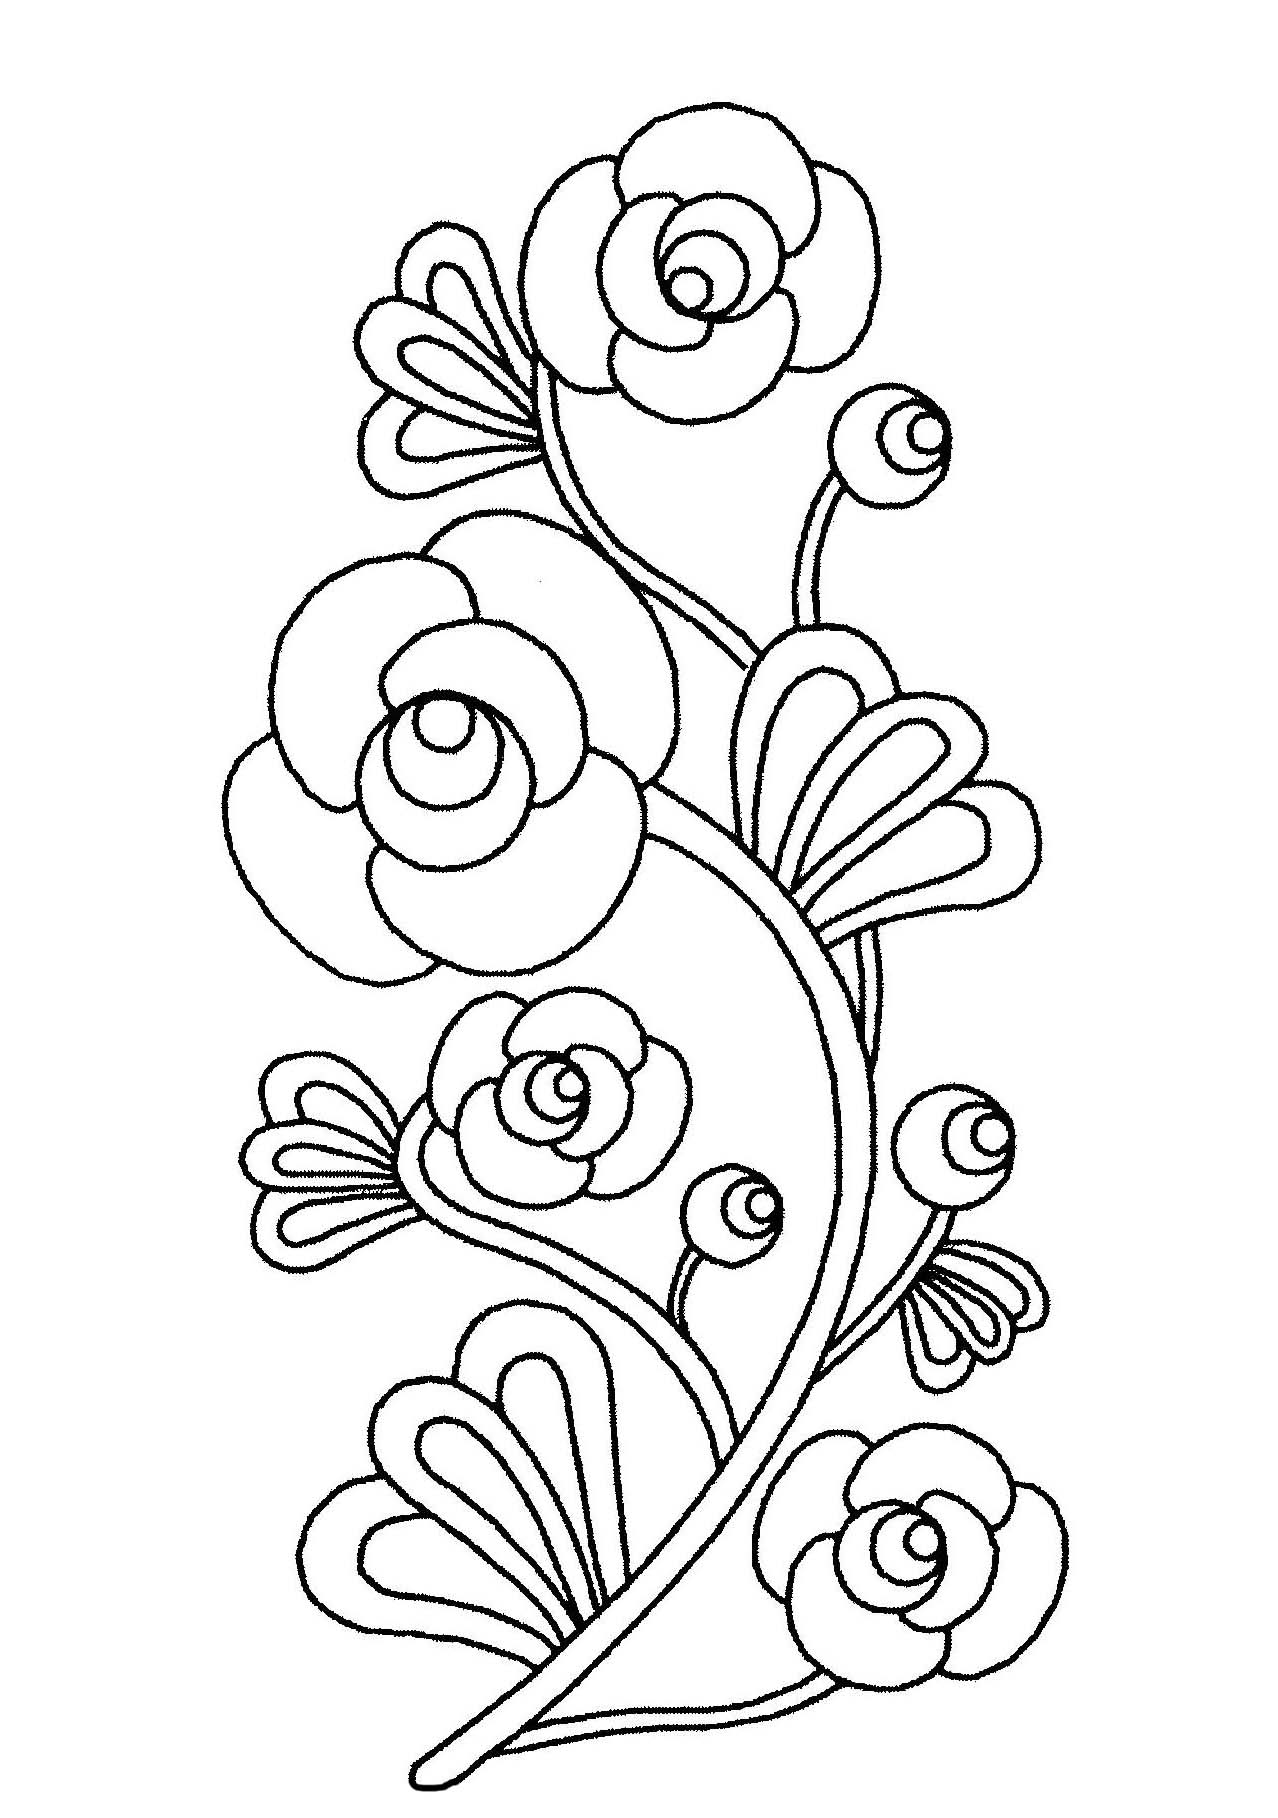 flower pattern coloring pages flower pattern coloring page free printable coloring pages coloring pages pattern flower